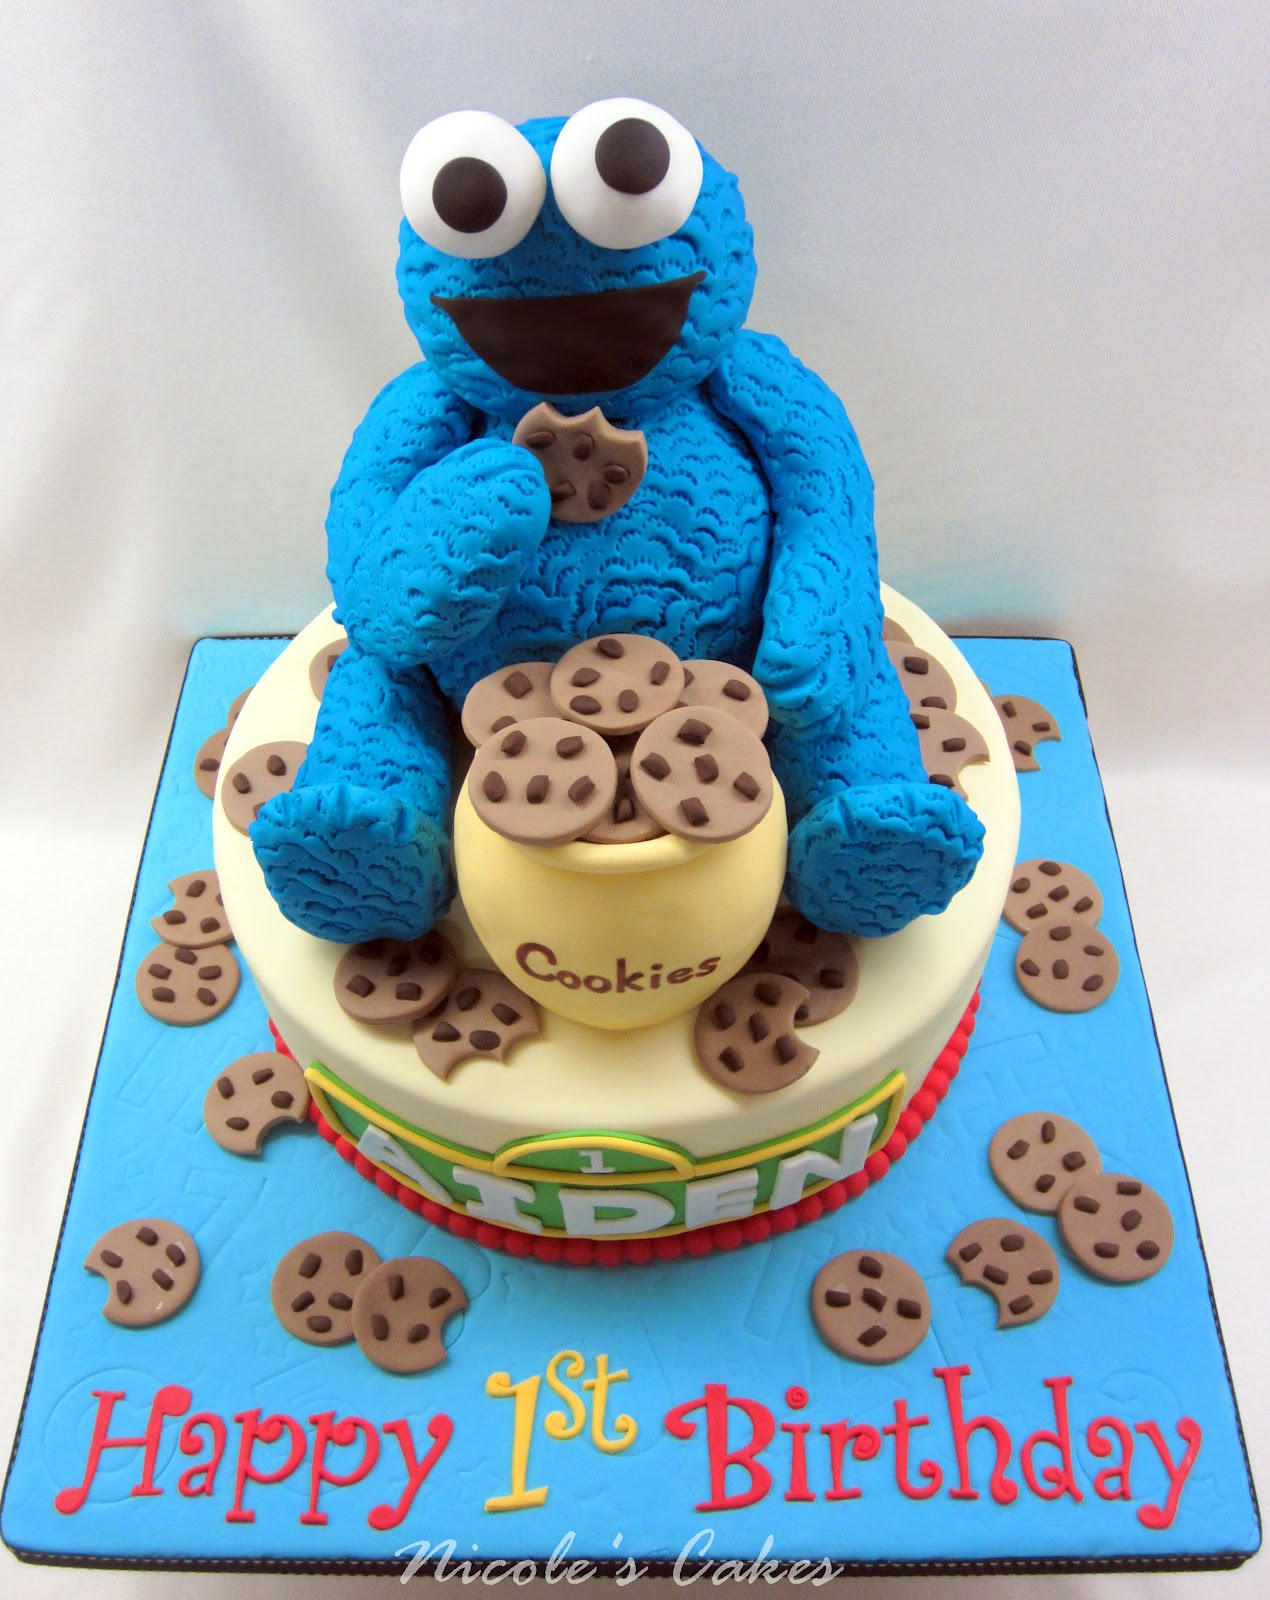 On Birthday Cakes The Cookie Monster A 1st Birthday Cake